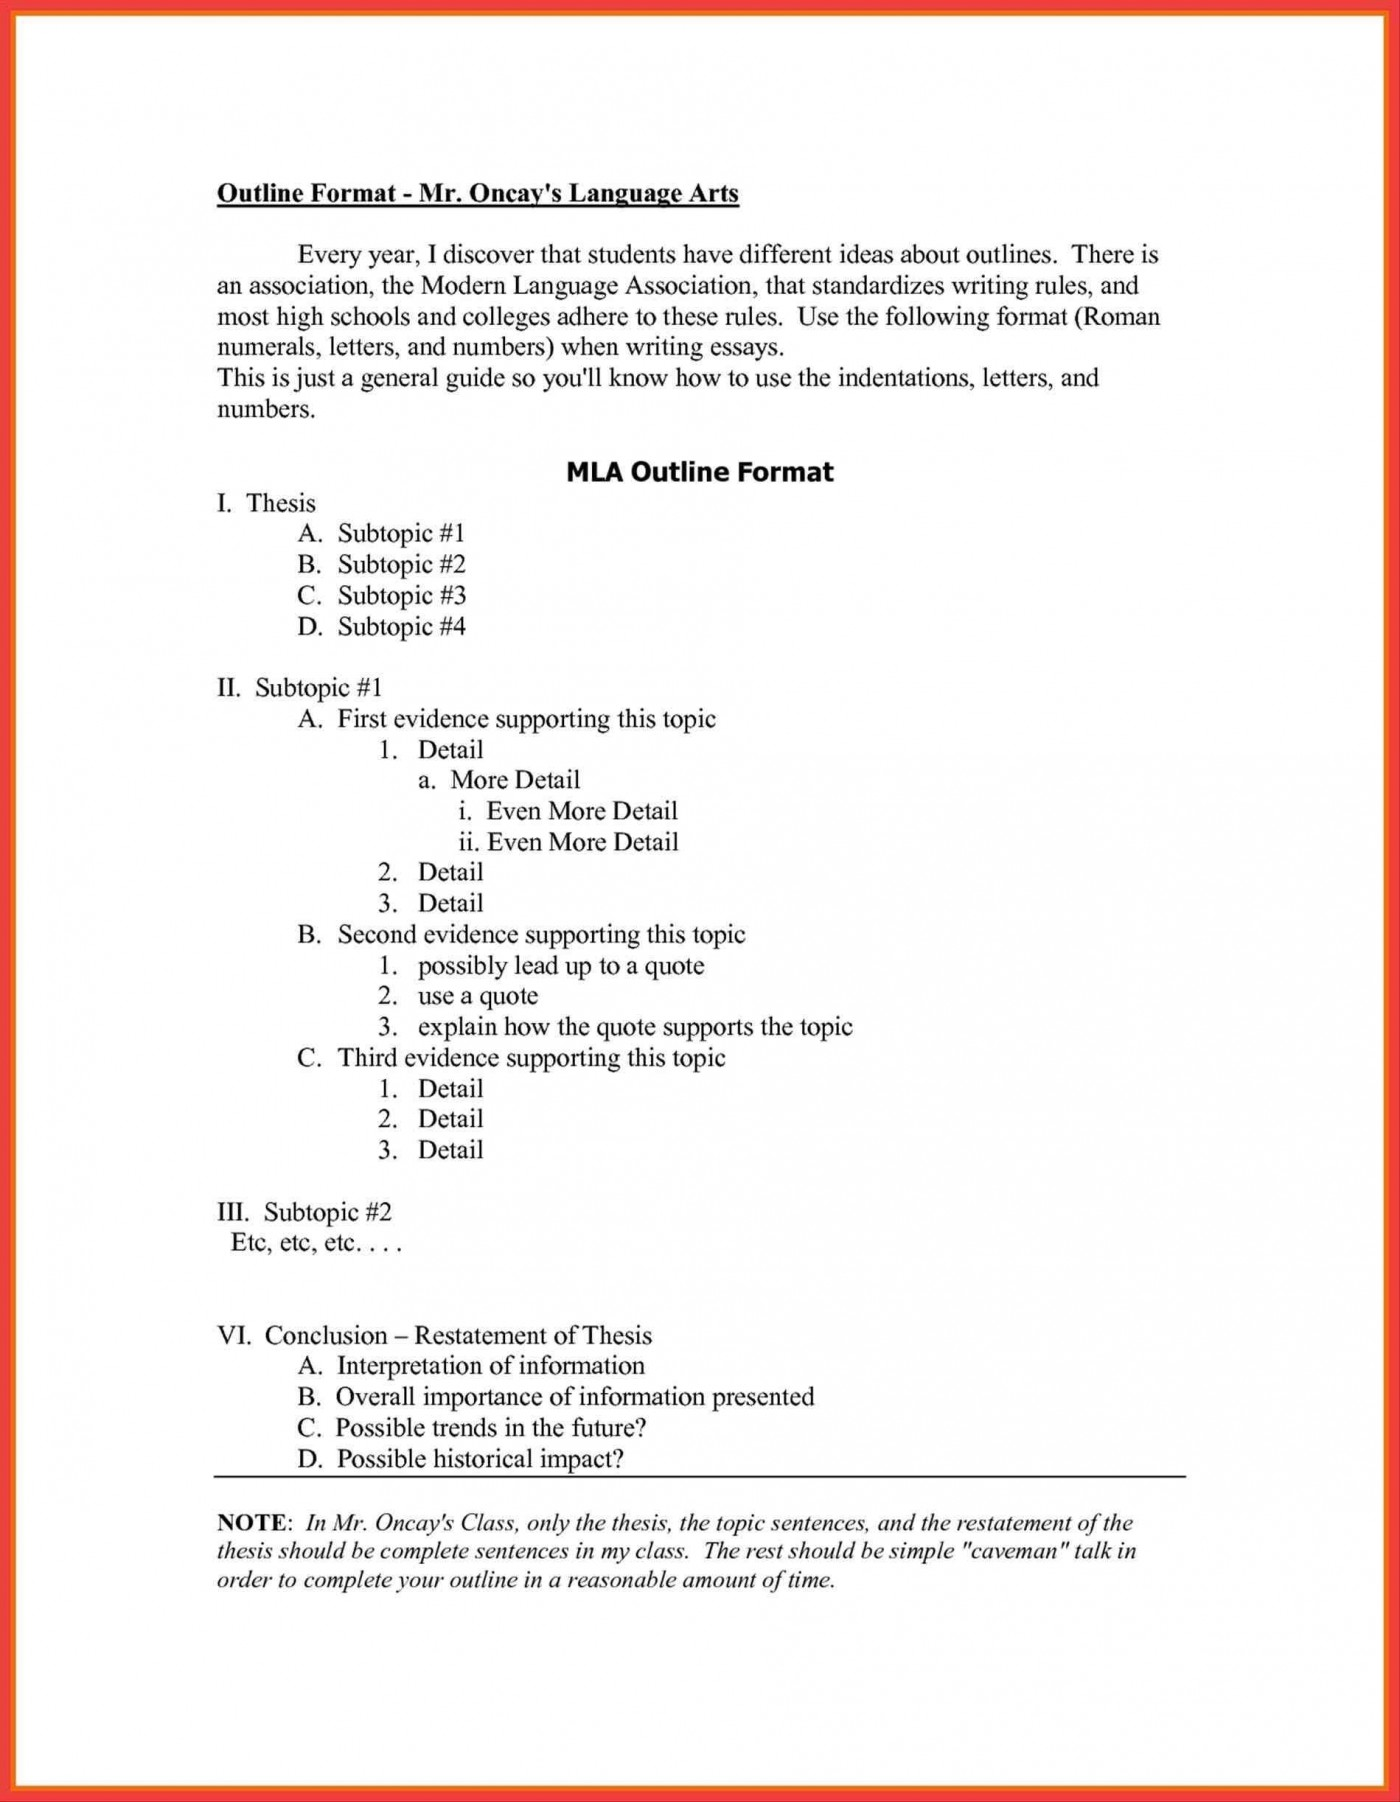 019 Apa Research Paper Outline Style Template Of Inside History Essay Unforgettable Sample Pdf 1400